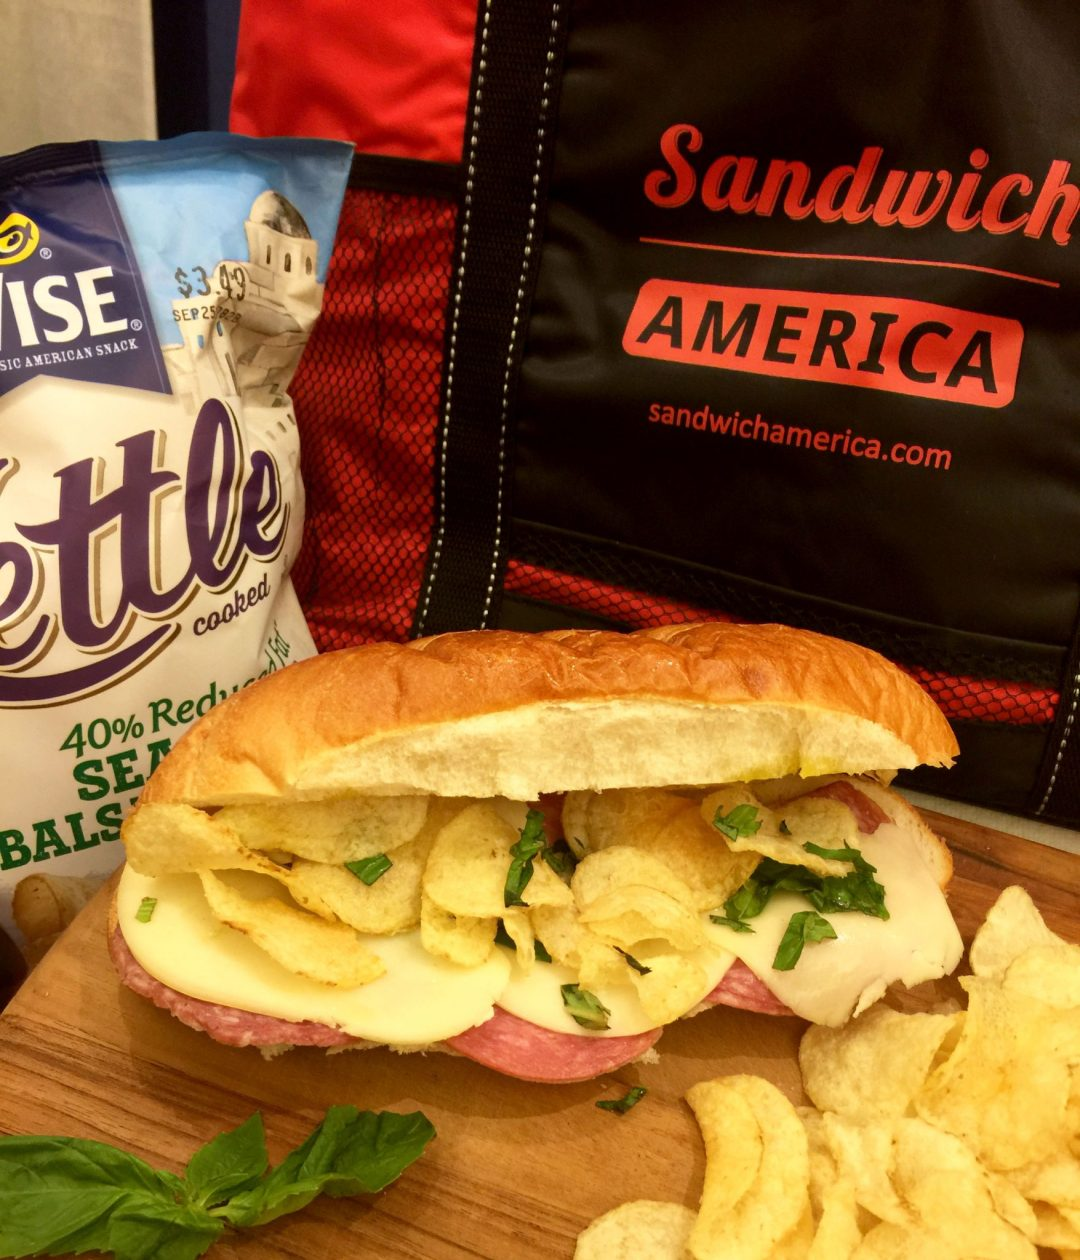 Sandwich America and Wise Chips!